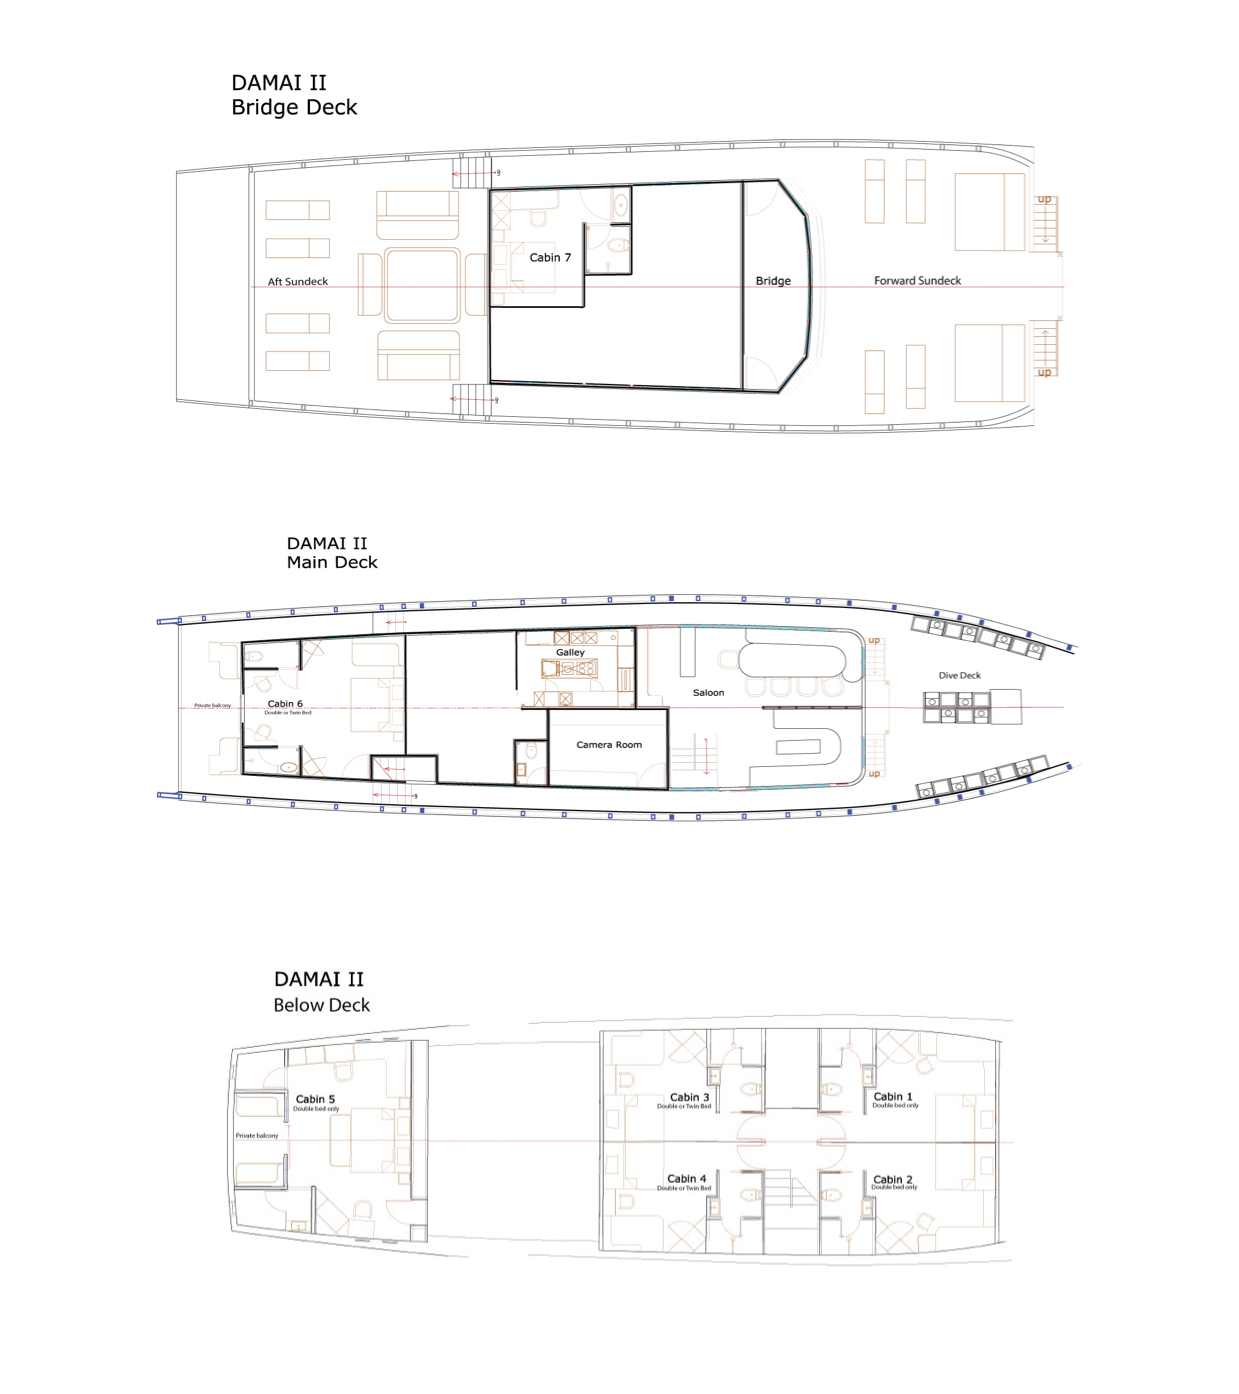 Damai II Deck Plan Grundriss